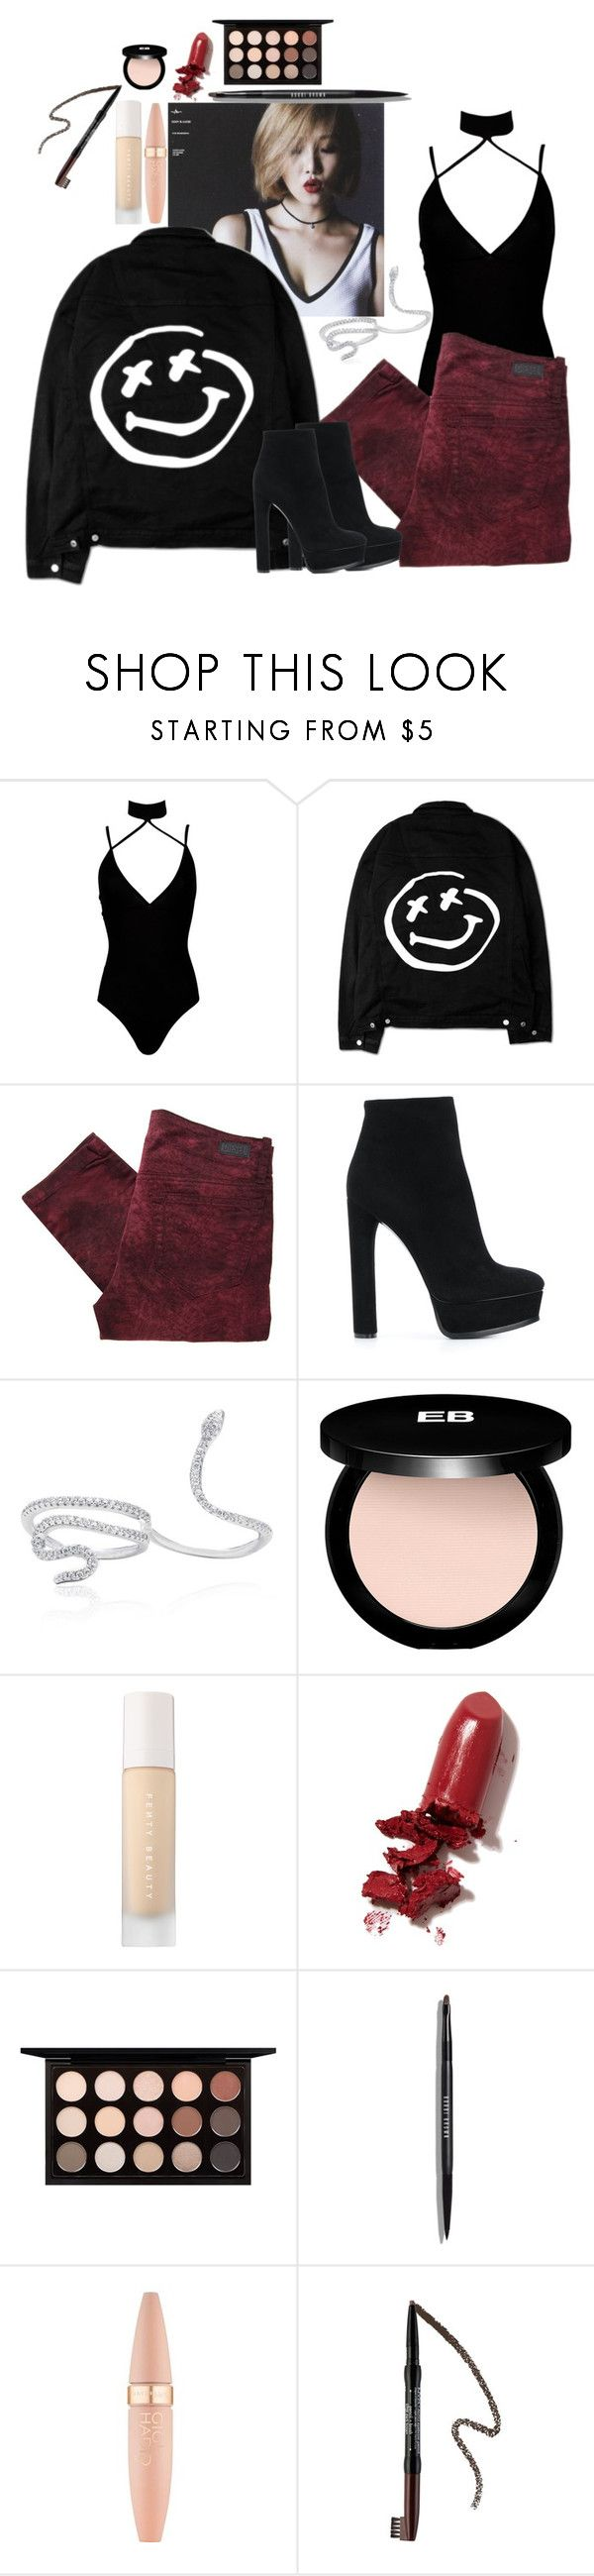 """""""Hwasa"""" by amour-vicieux ❤ liked on Polyvore featuring Boohoo, Diesel, Casadei, Edward Bess, Puma, LAQA & Co., MAC Cosmetics, Bobbi Brown Cosmetics, Maybelline and Forever 21"""